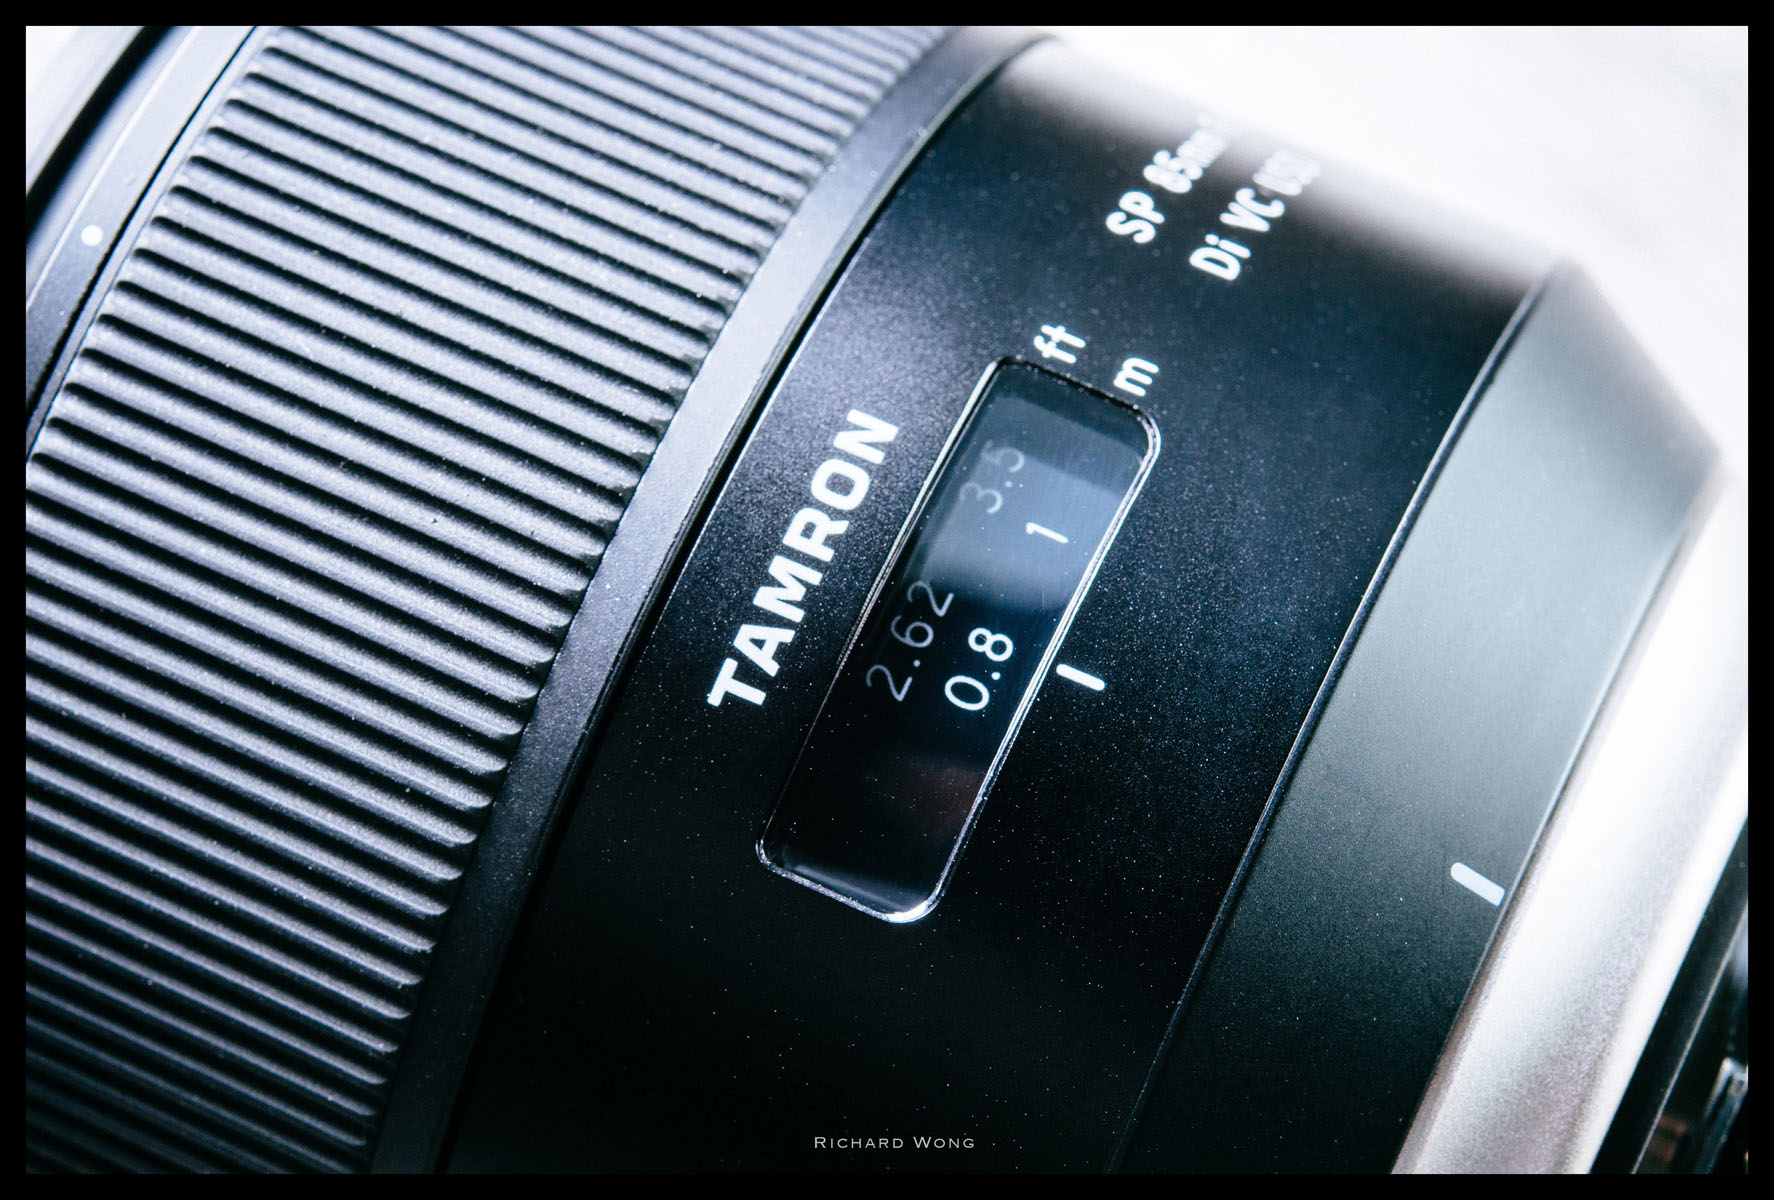 Tamron-f016-85mm-f1.8-vc-review-05